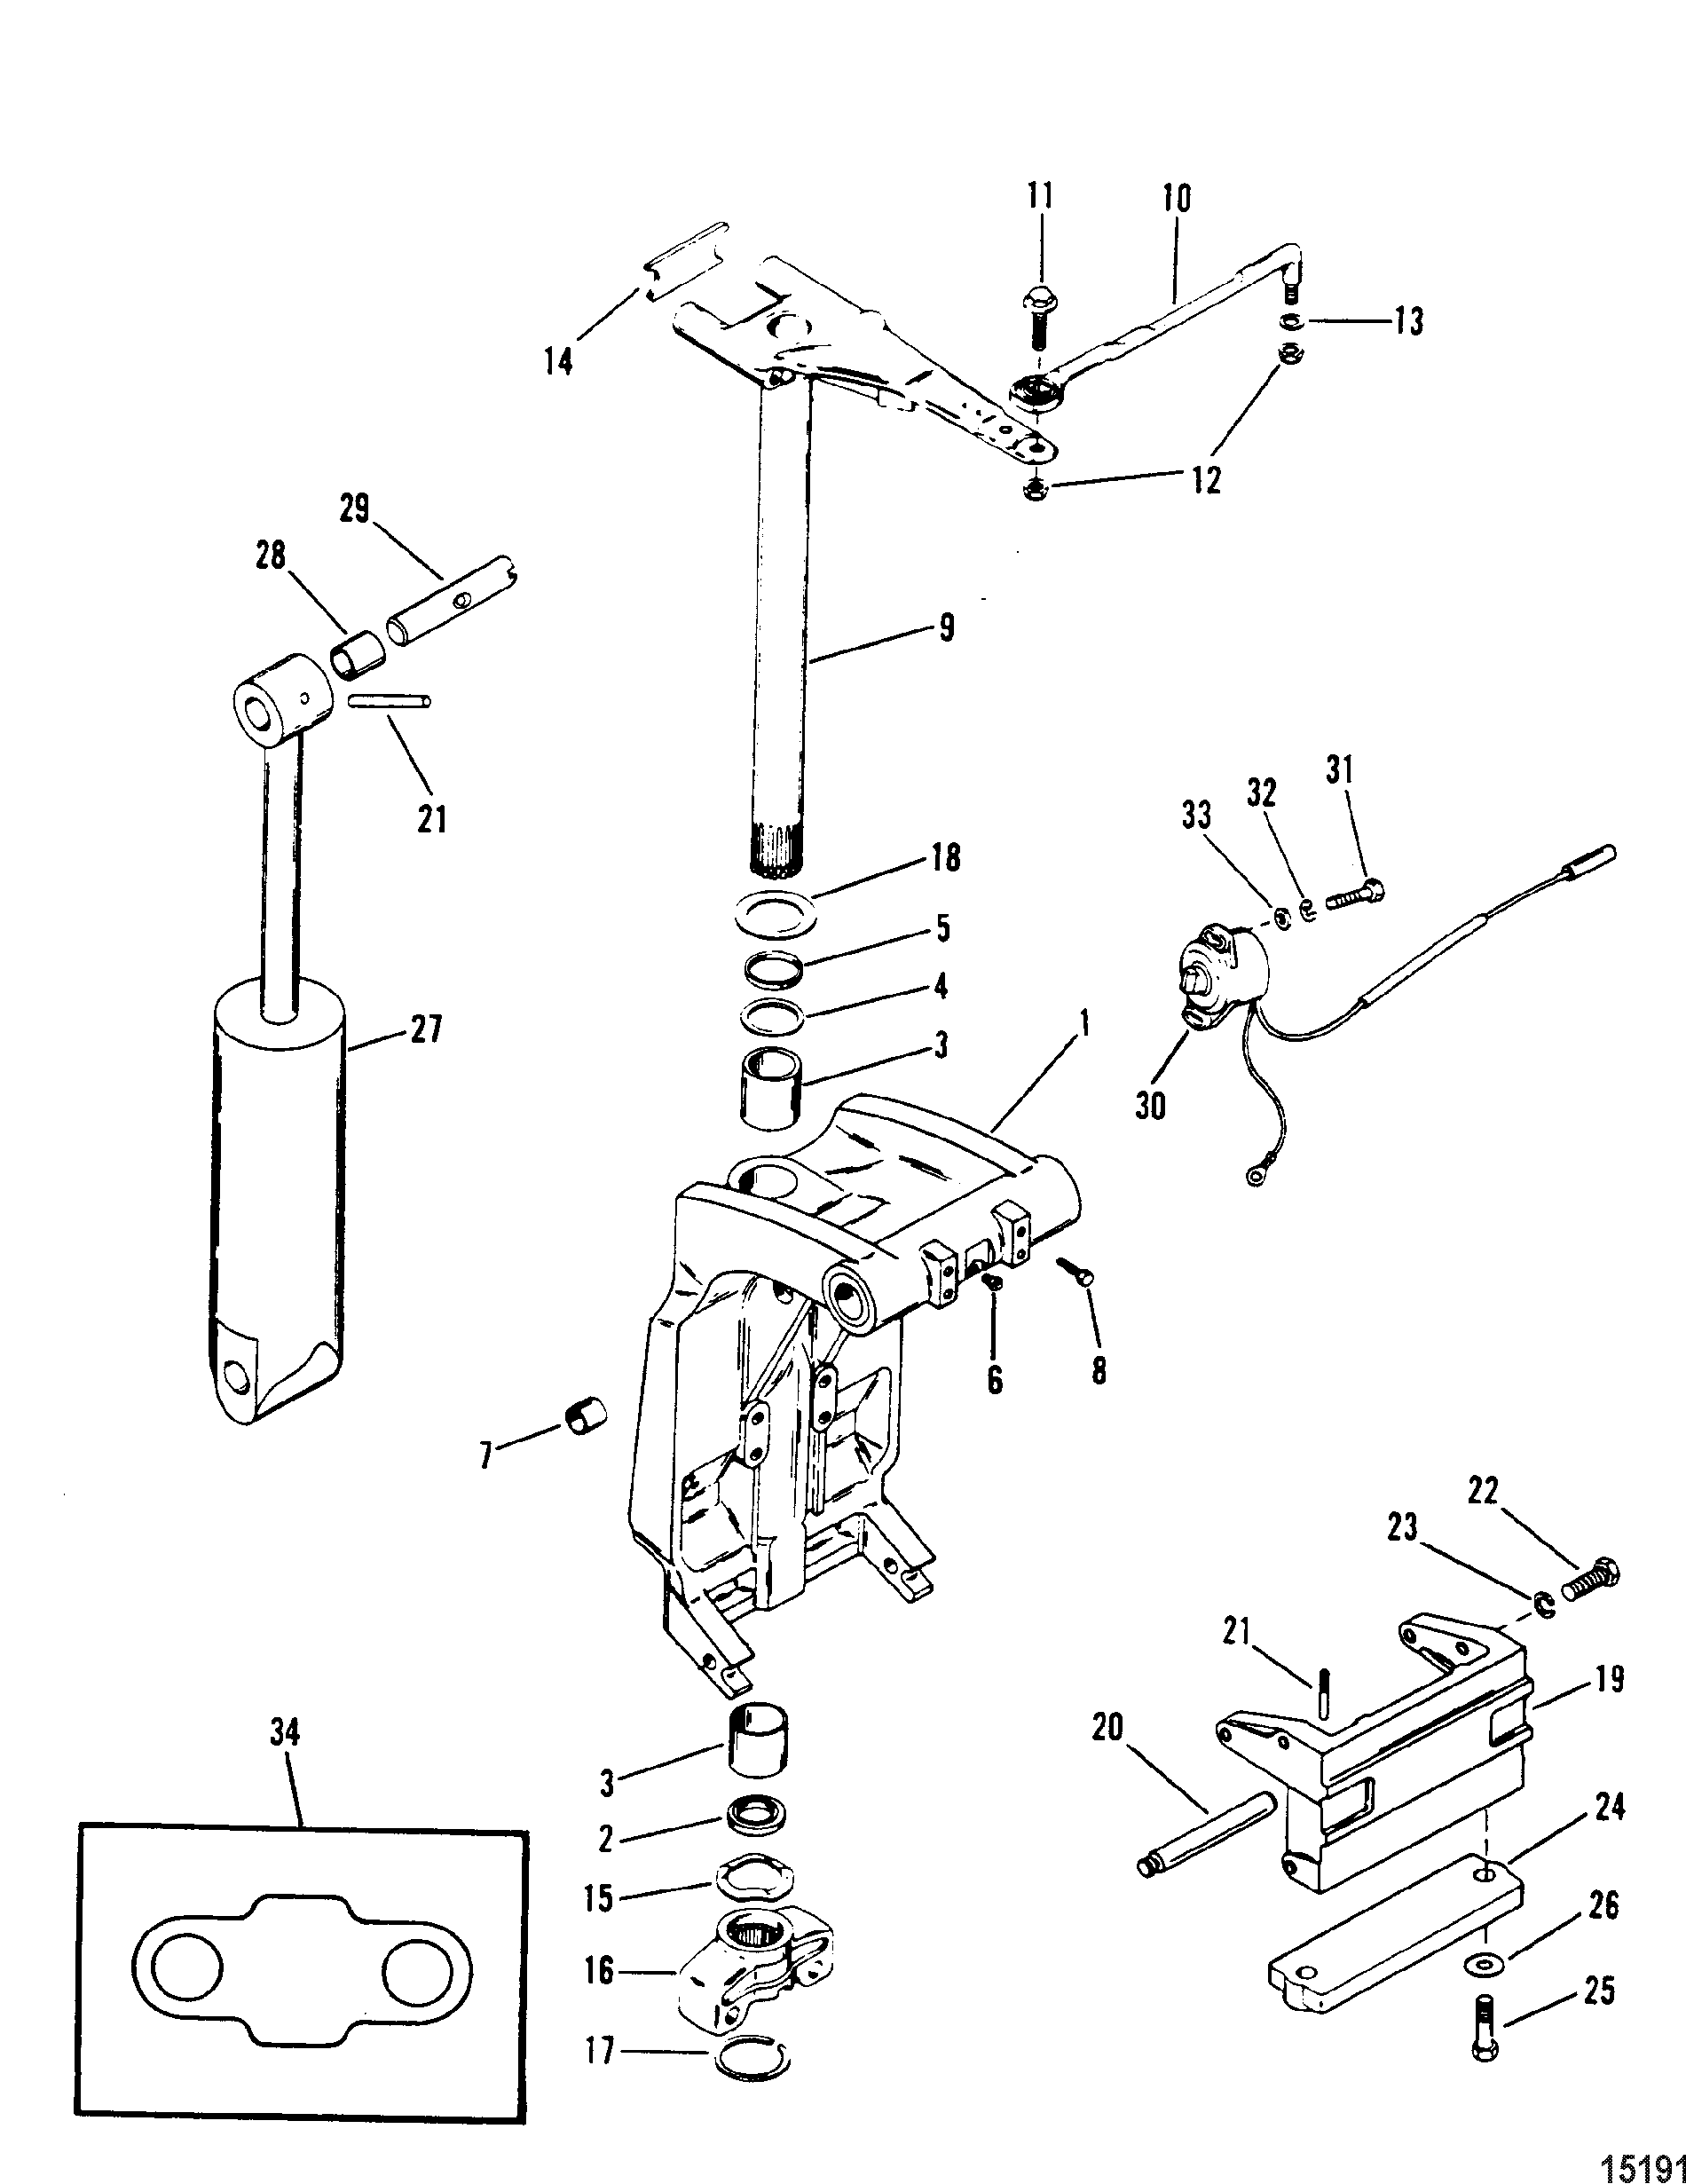 hight resolution of swivel bracket and steering arm for mariner mercury sea ray 100 diagram of 1990 mercury marine sea ray 9100412wd electrical components